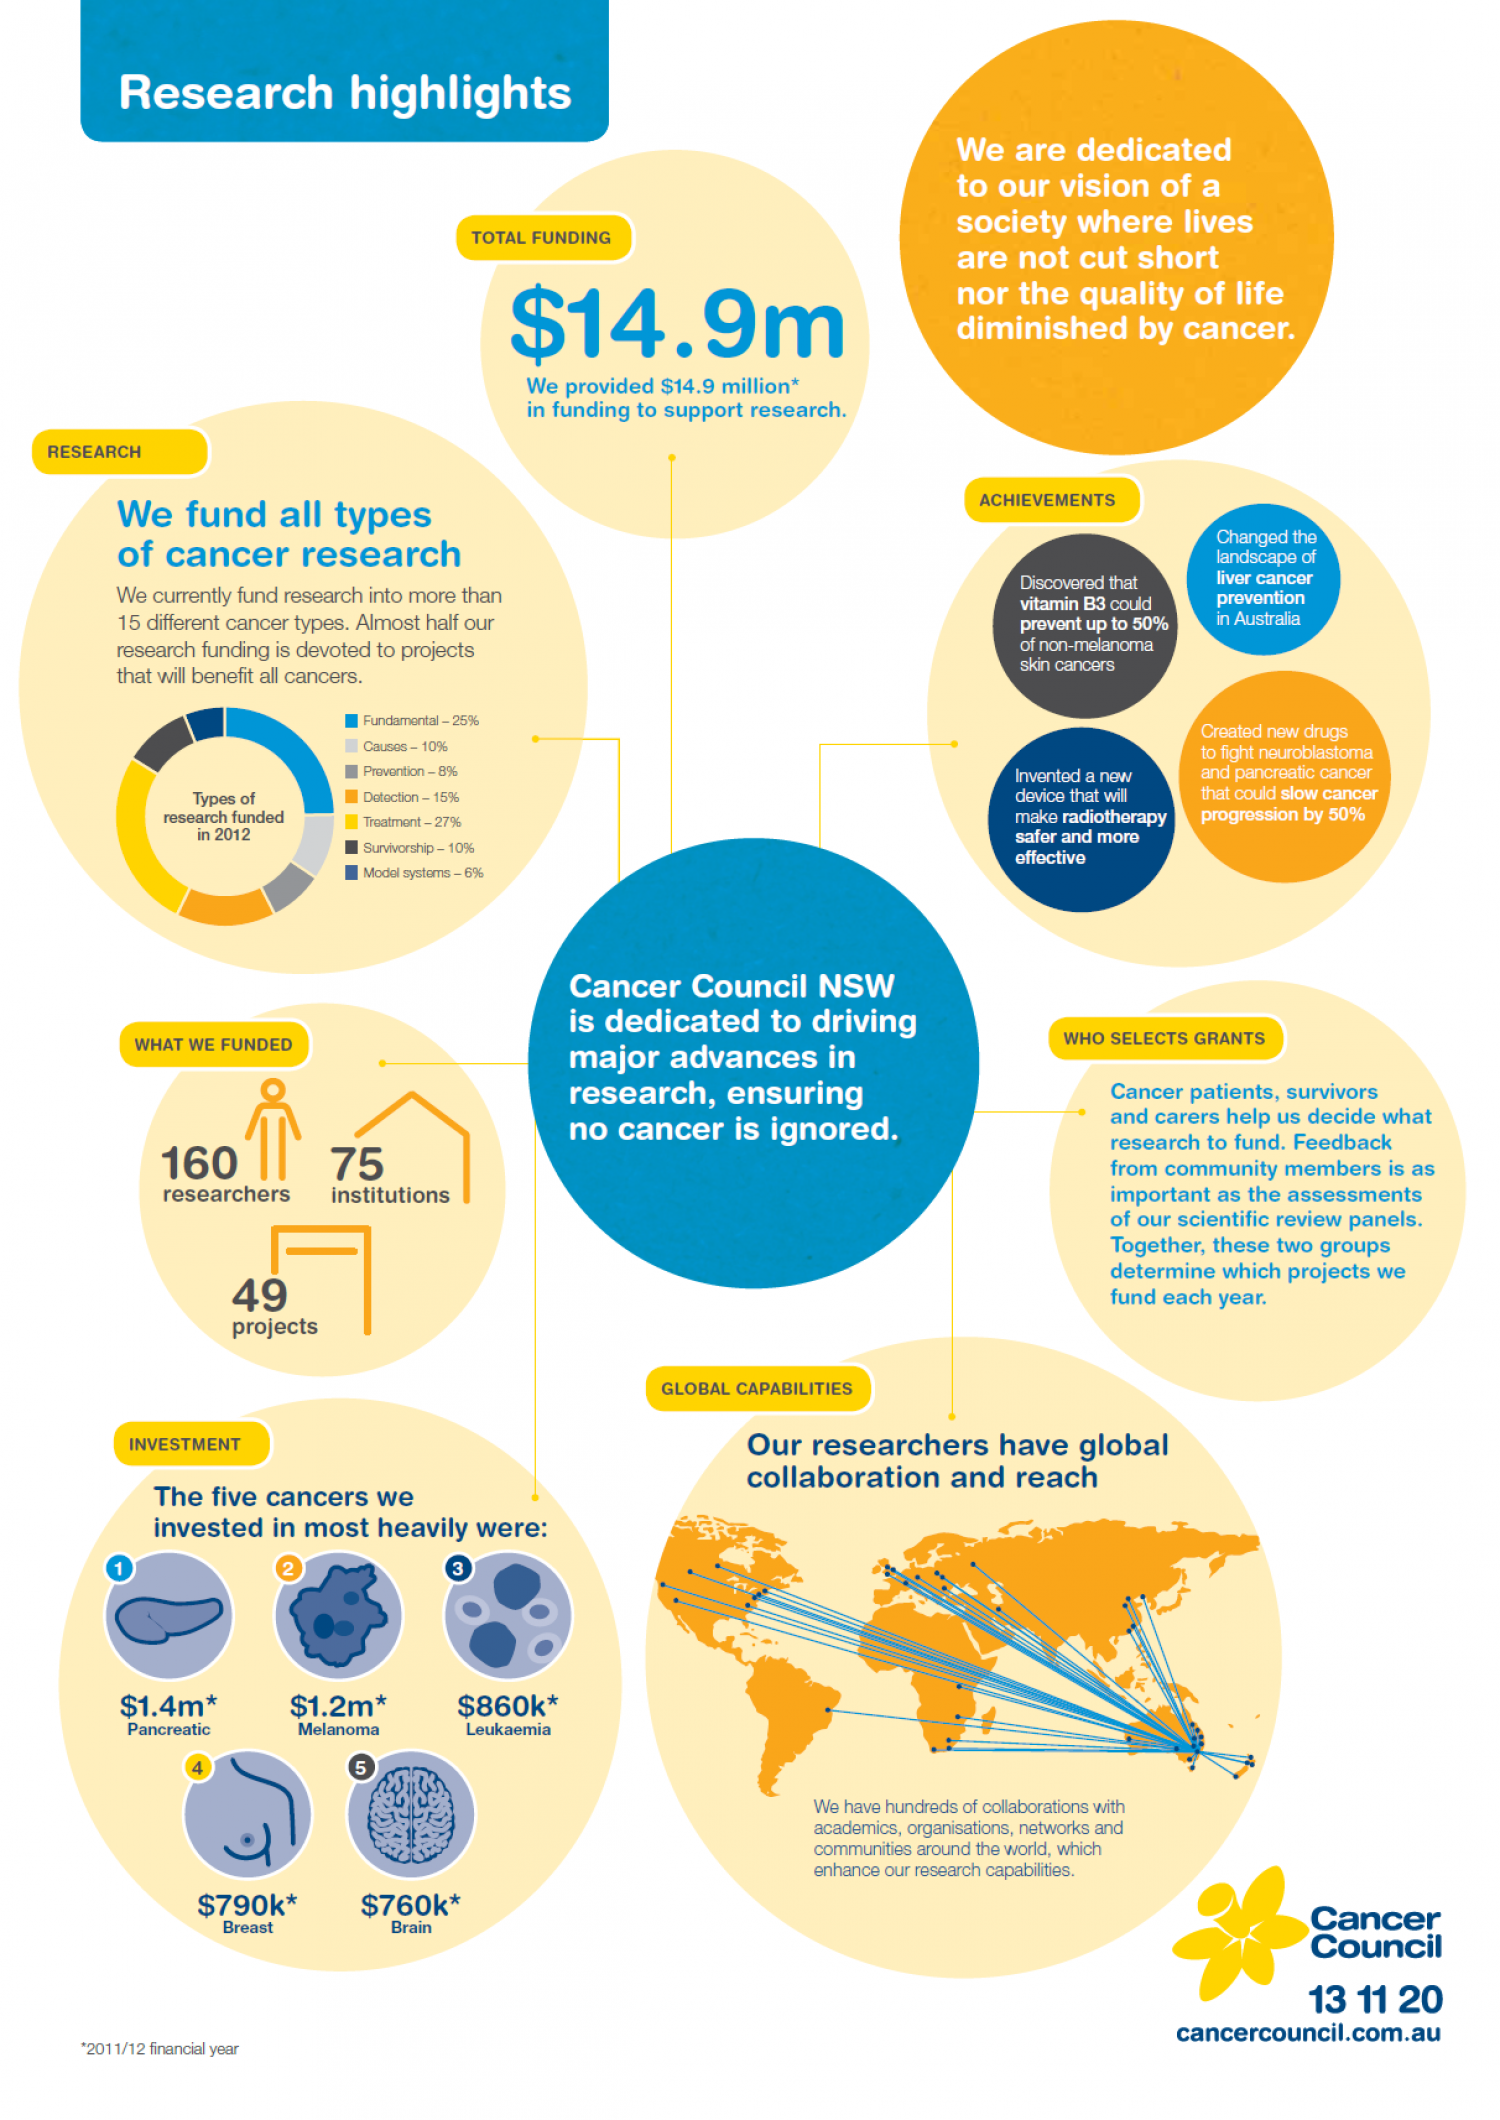 Cancer Council NSW Research Highlights 2012 Infographic